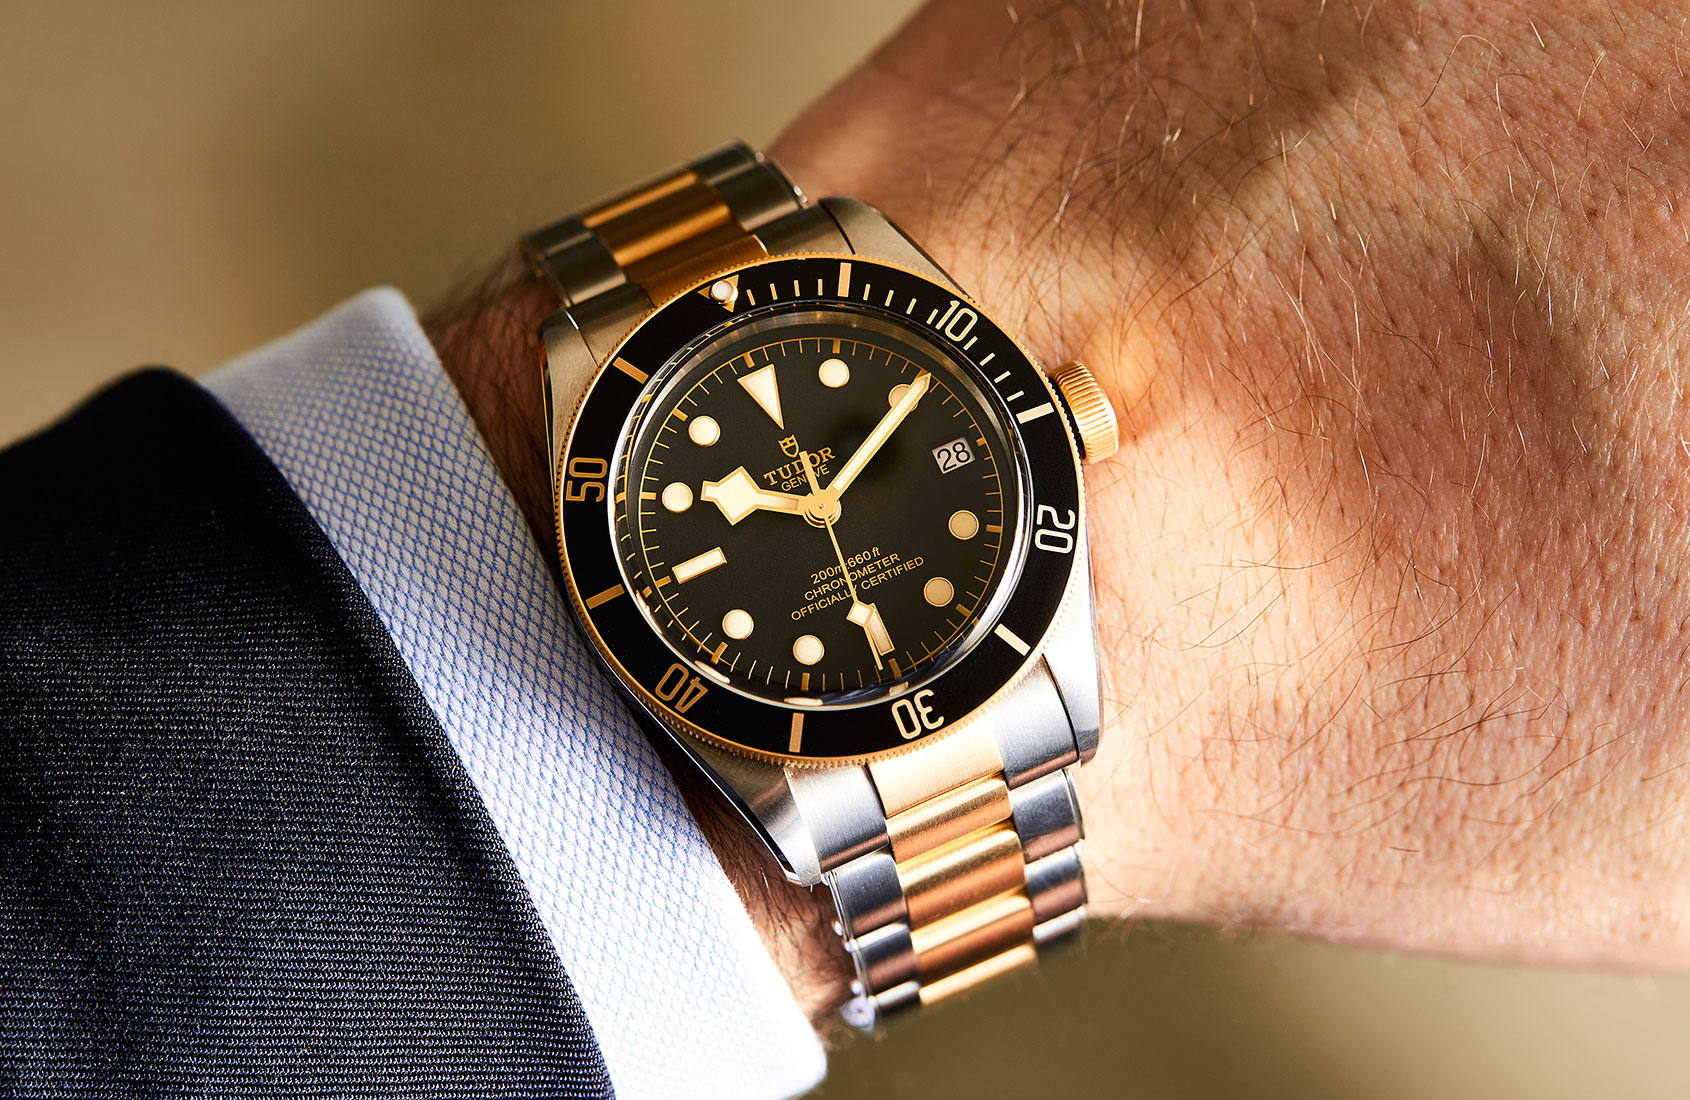 IN-DEPTH: The Tudor Heritage Black Bay S&G